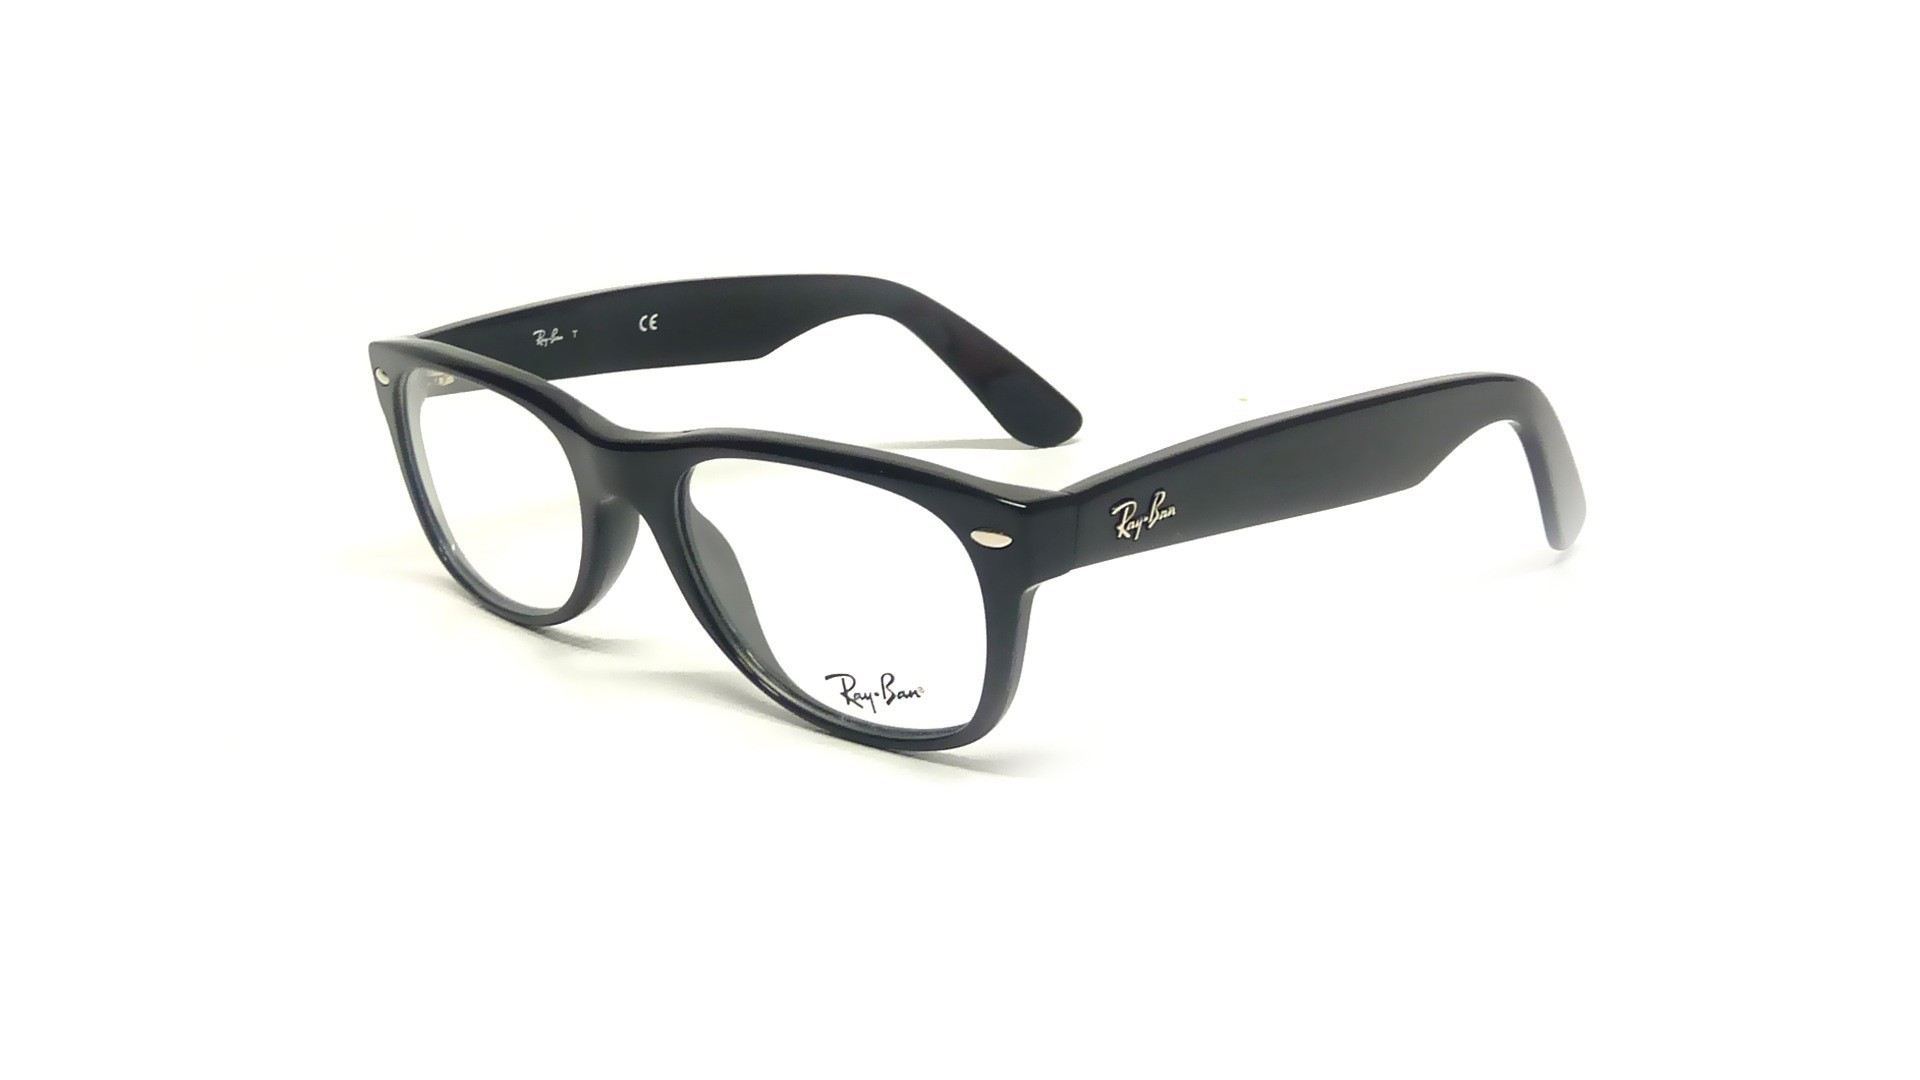 9a5596b47618c Eyeglasses Ray-Ban New Wayfarer Black RX5184 RB5184 2000 52-18 ...